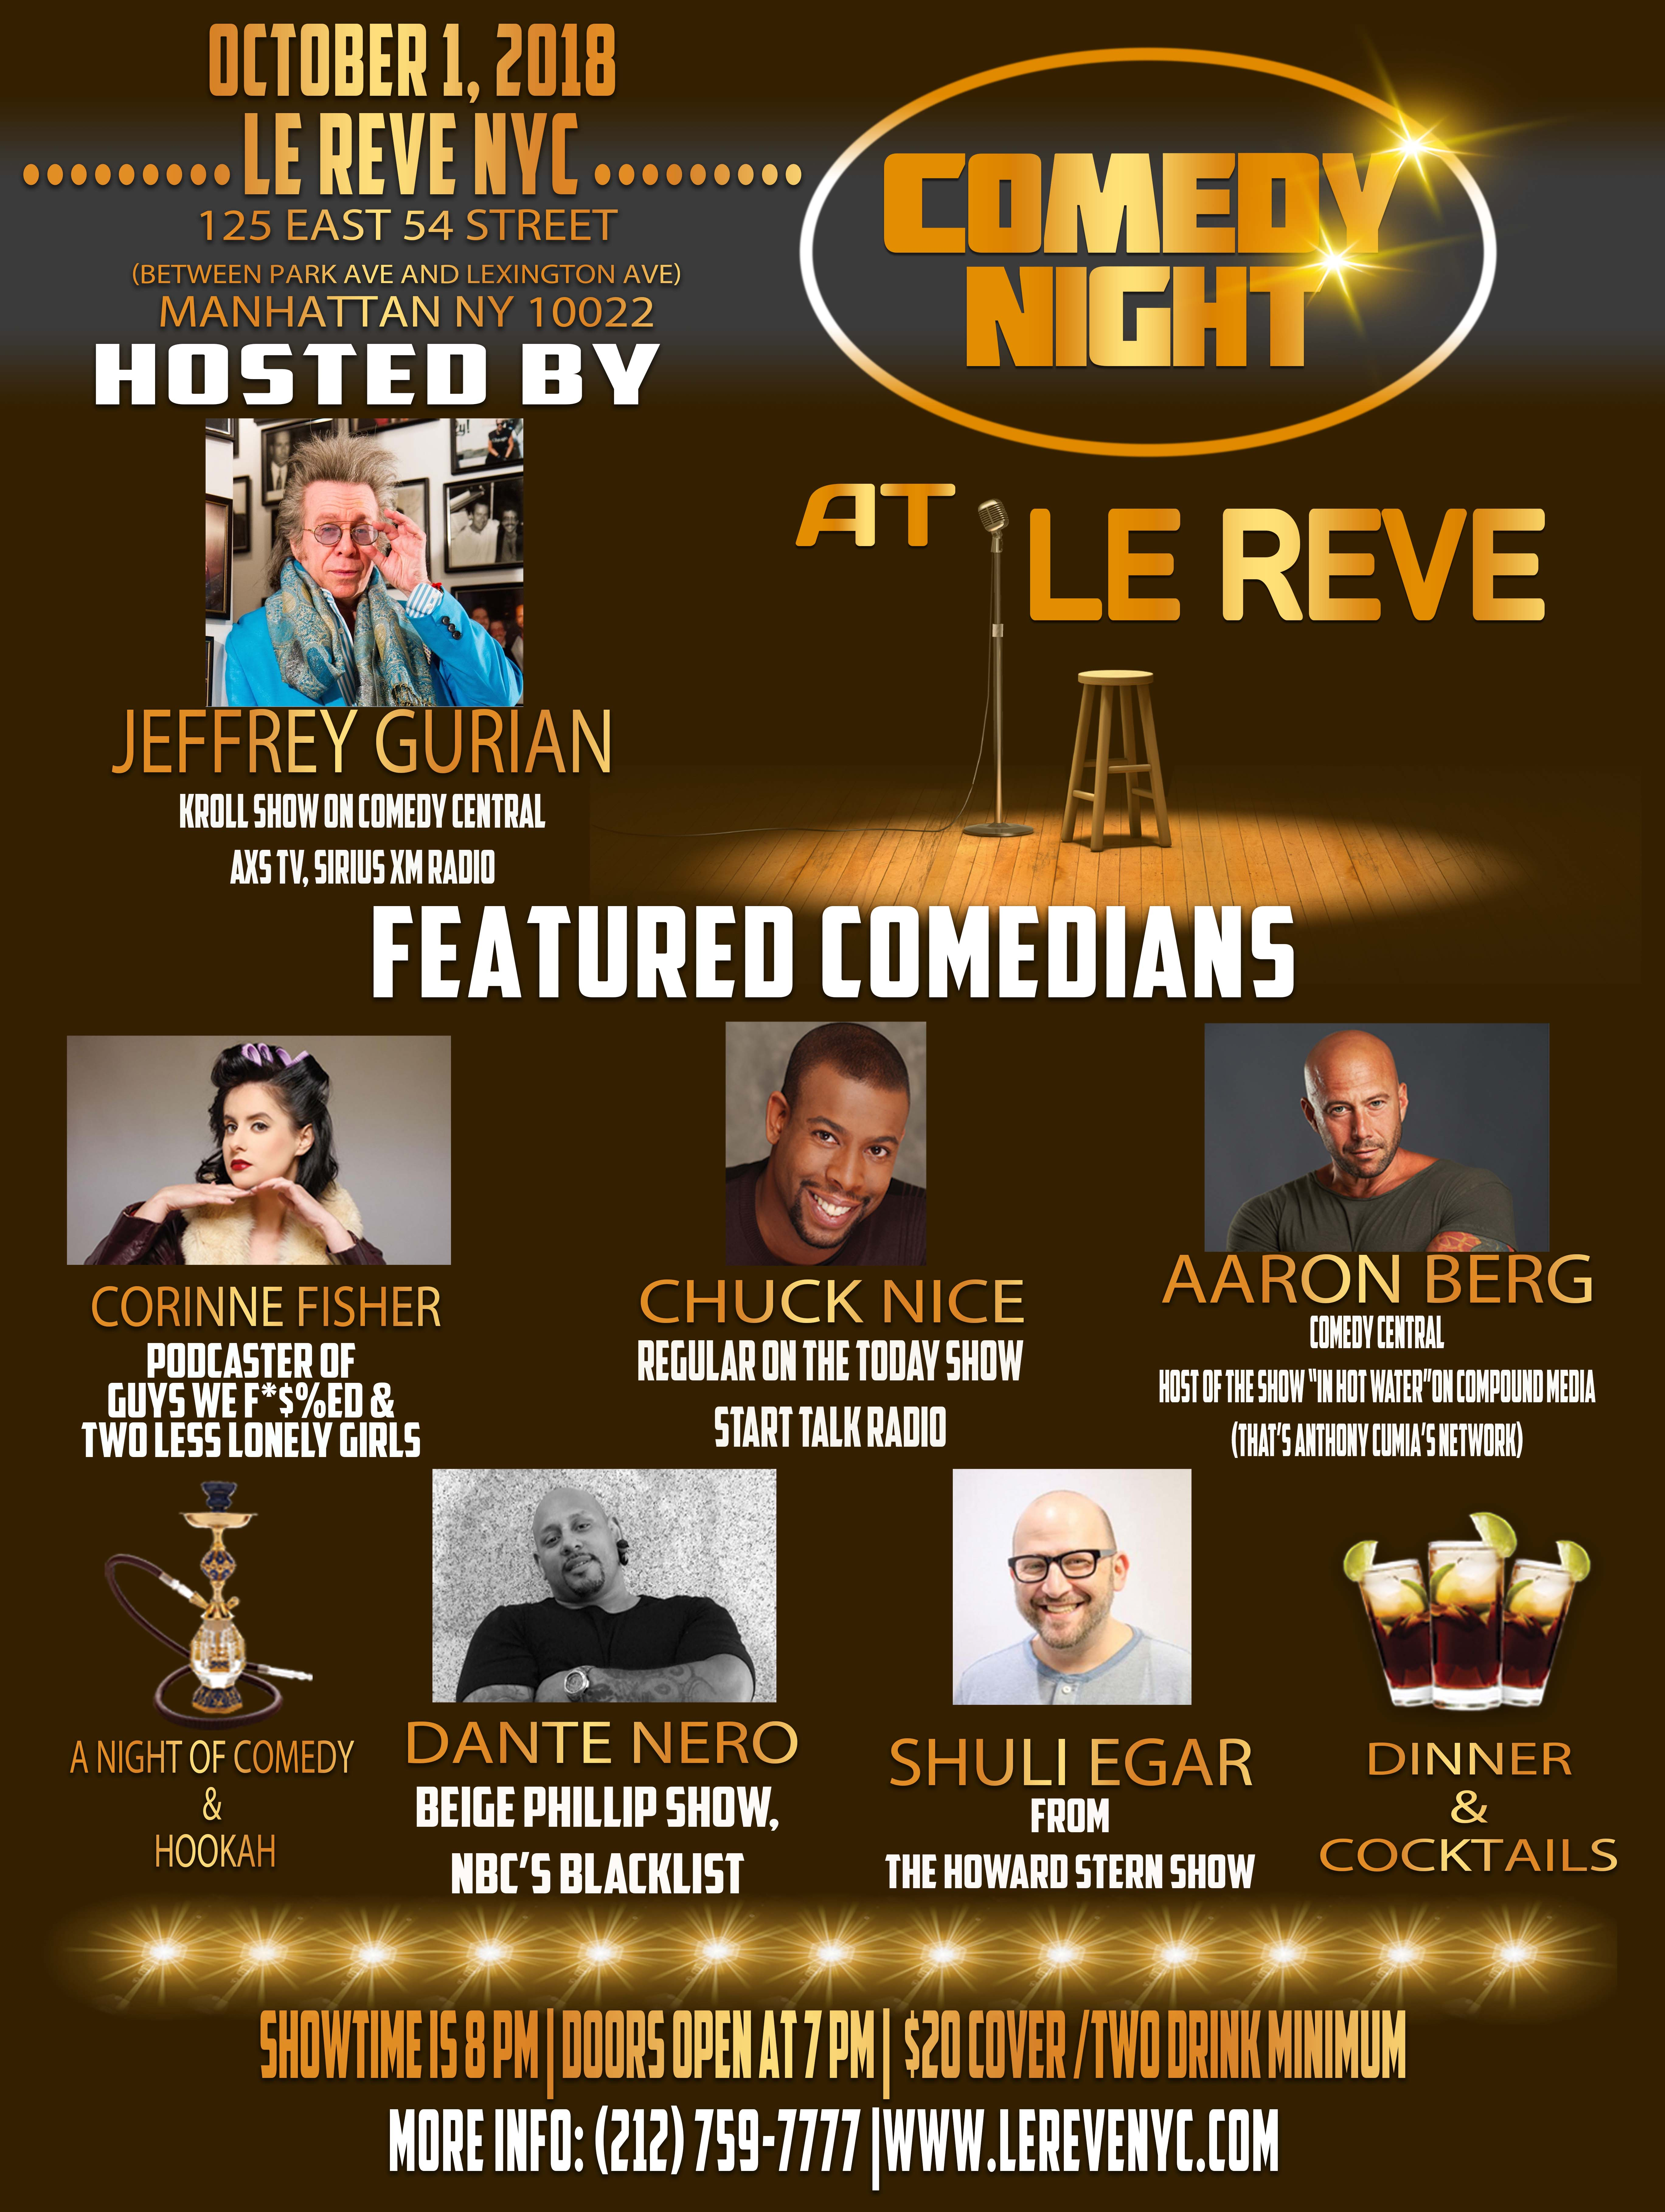 KILLER COMEDY SHOW AT BEAUTIFUL EAST SIDE NIGHTCLUB THIS COMING MONDAY OCT. 1